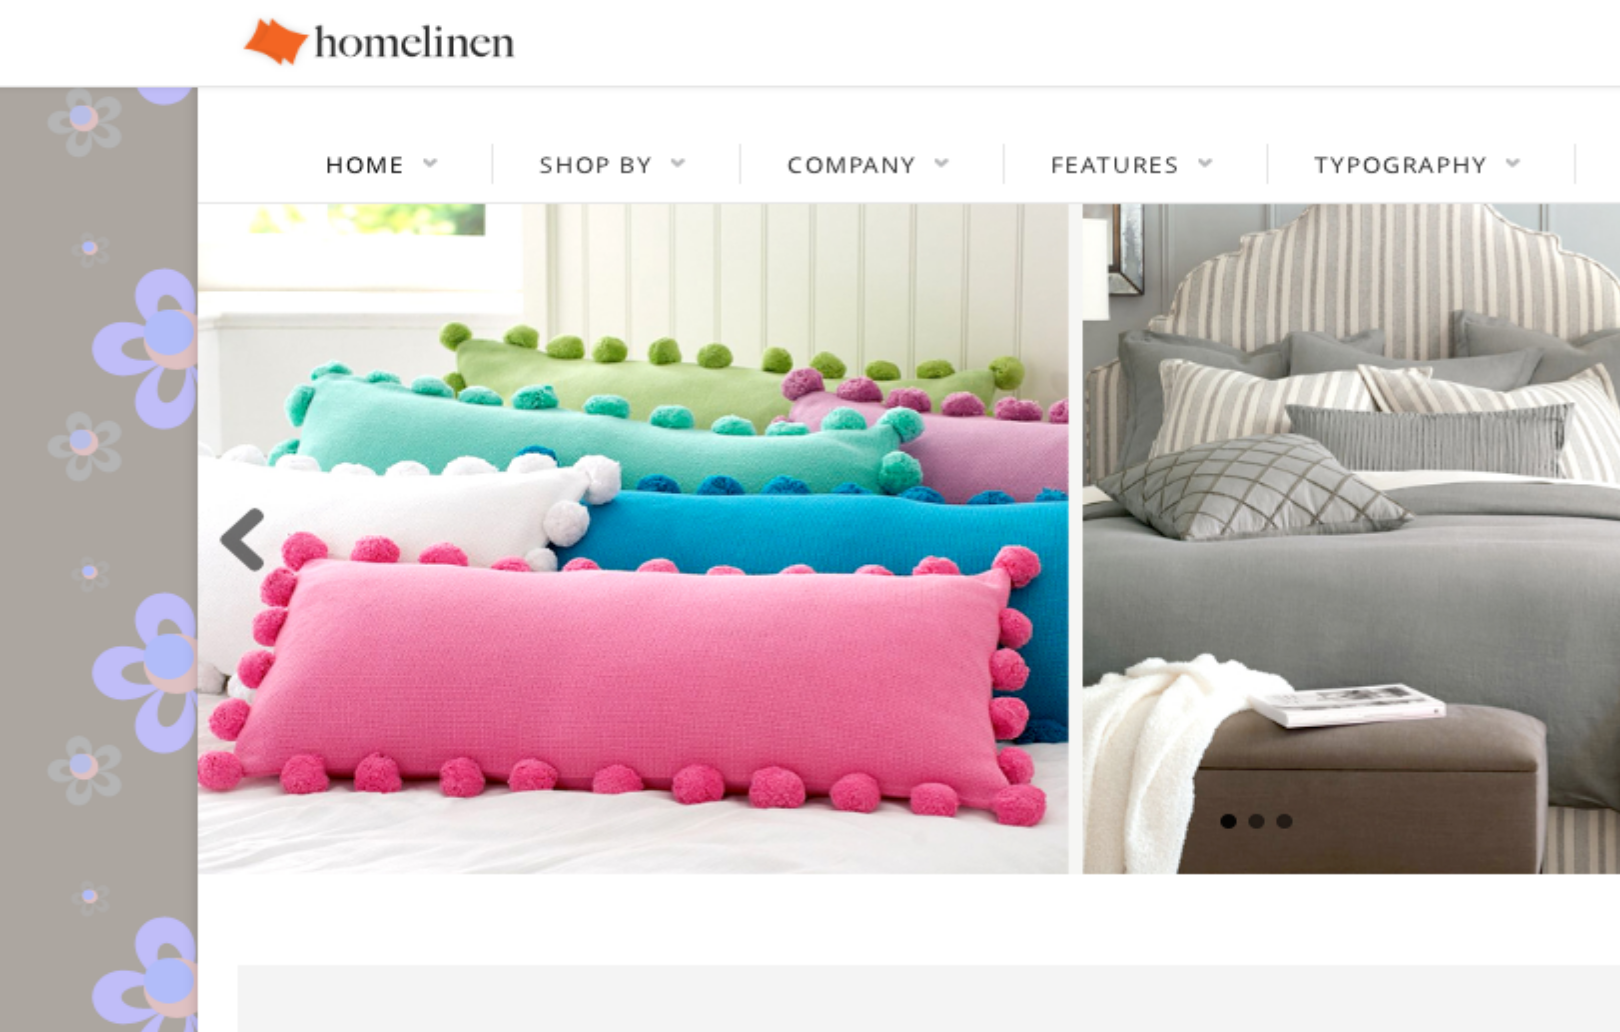 Home linen - perfect Drupal ecommerce theme